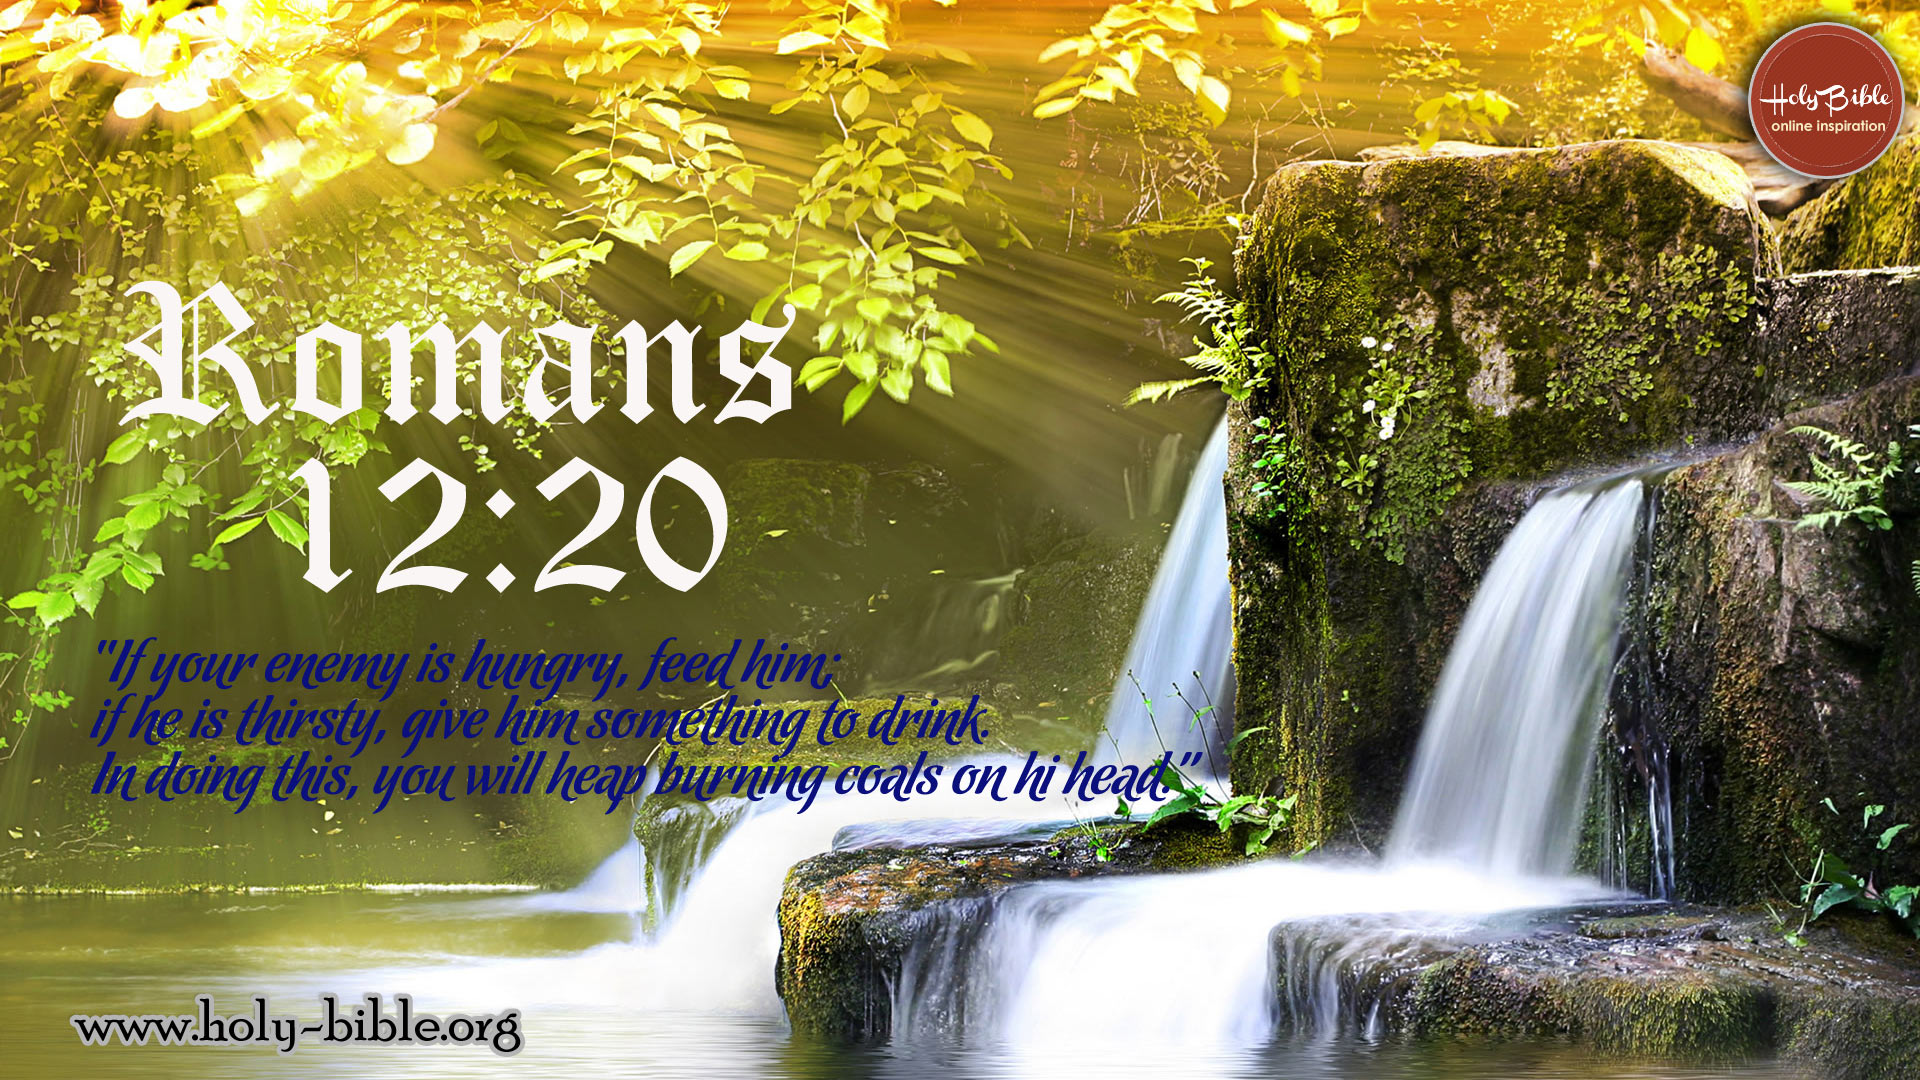 Bible Verse of the day - Romans 12:20